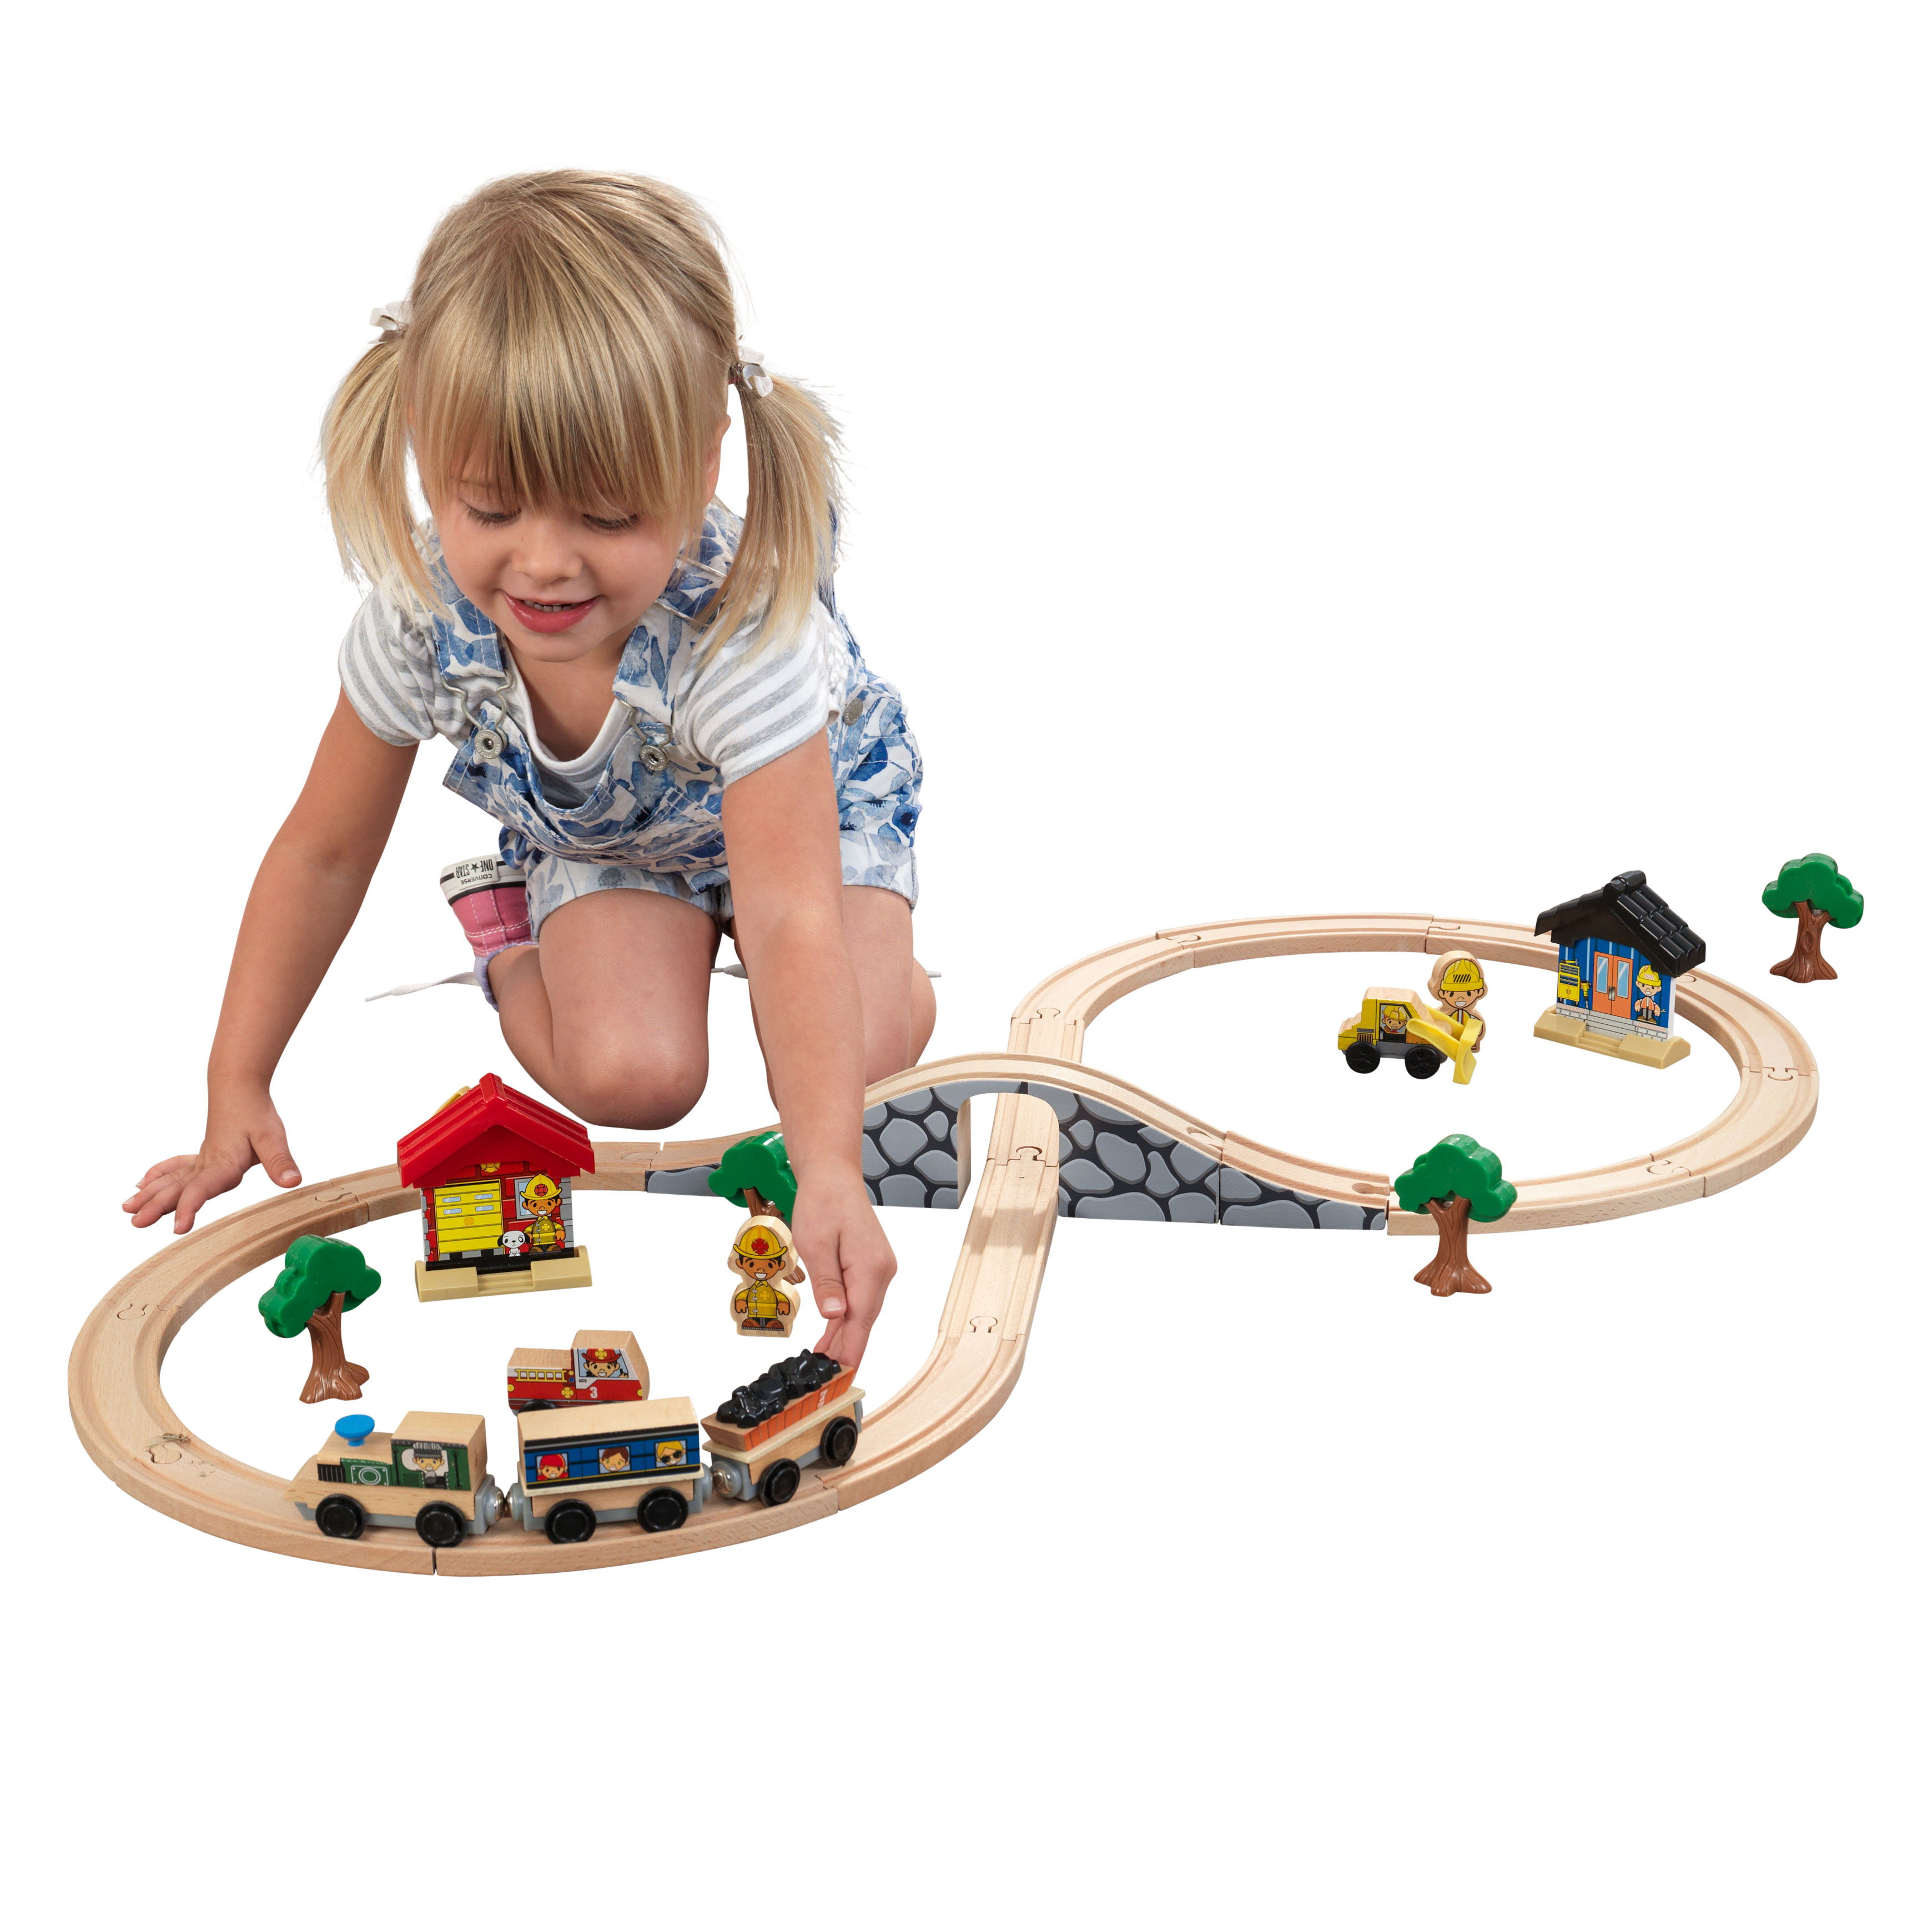 KidKraft Figure 8 Train Set with 38 accessories included